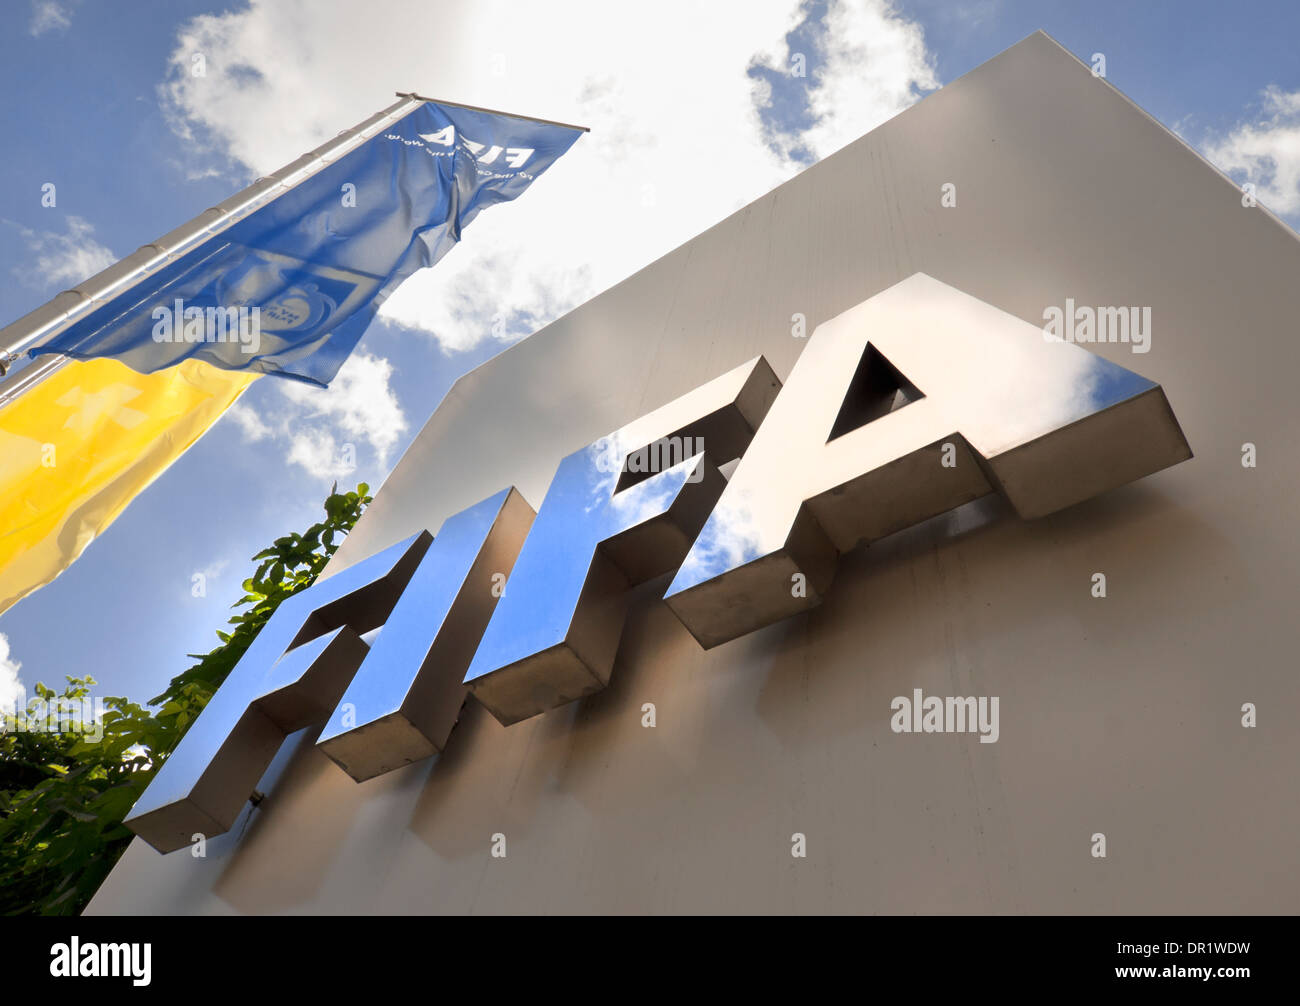 Entrance to the FIFA headquarters in Zurich, Switzerland - Stock Image